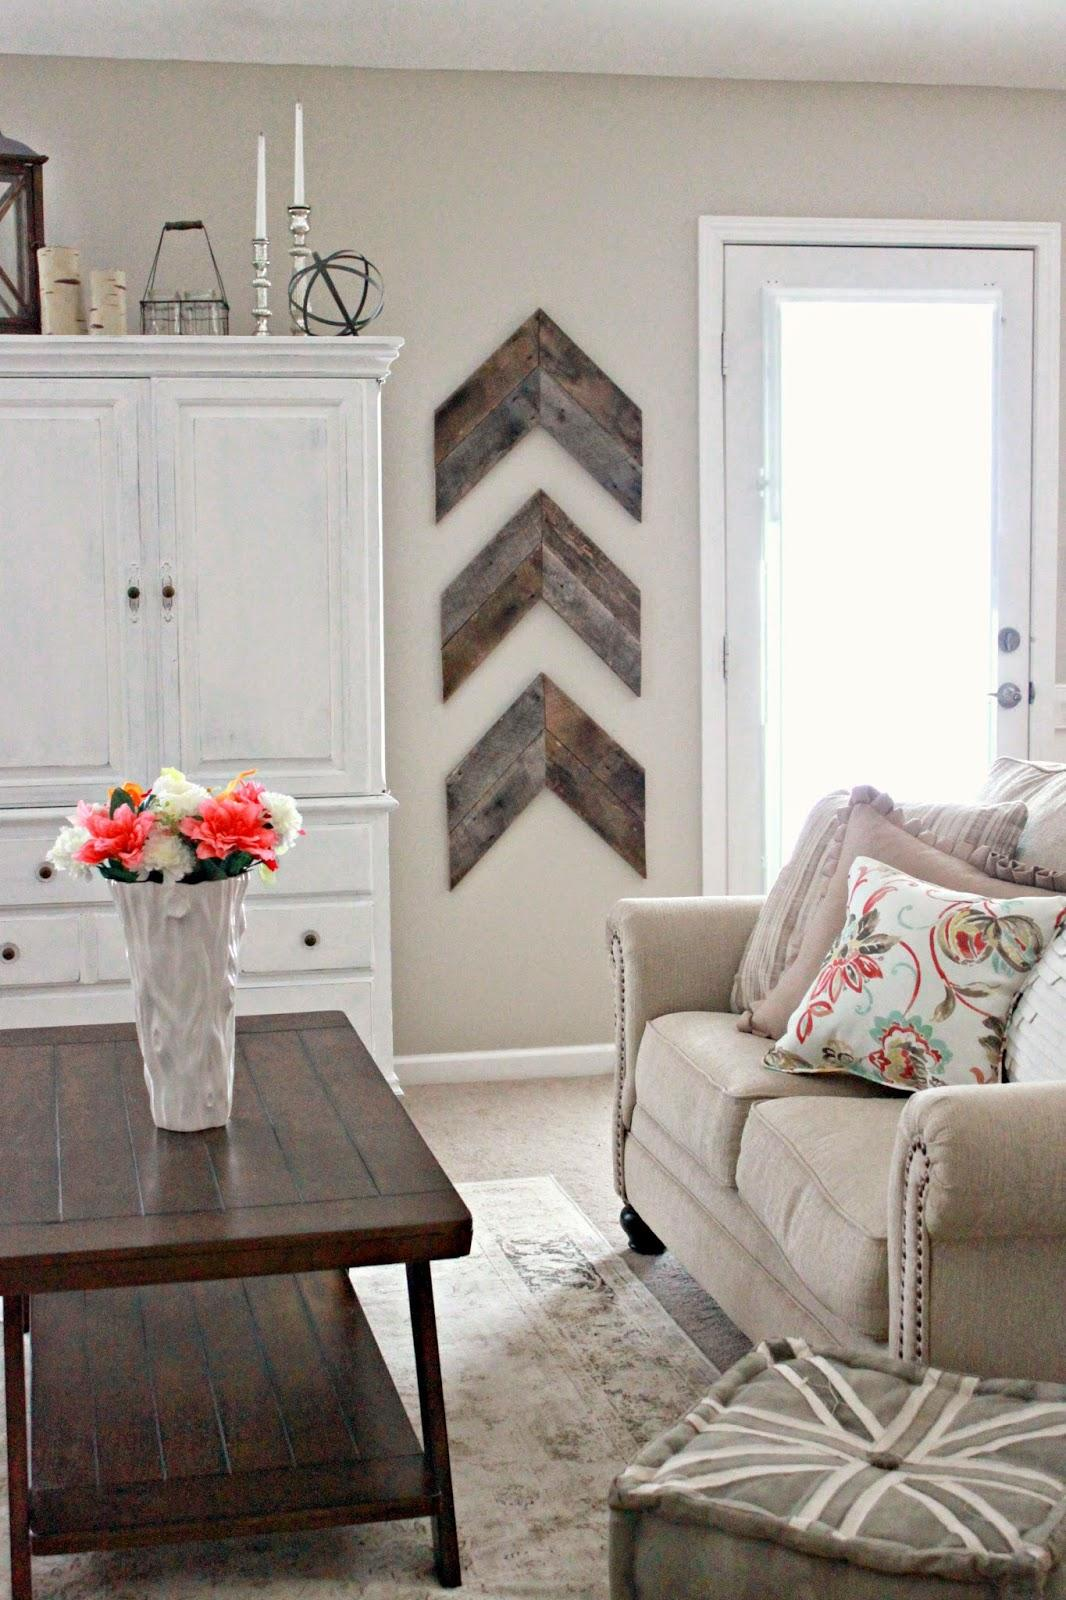 Chic and Simple Reclaimed Wood Wall Chevrons